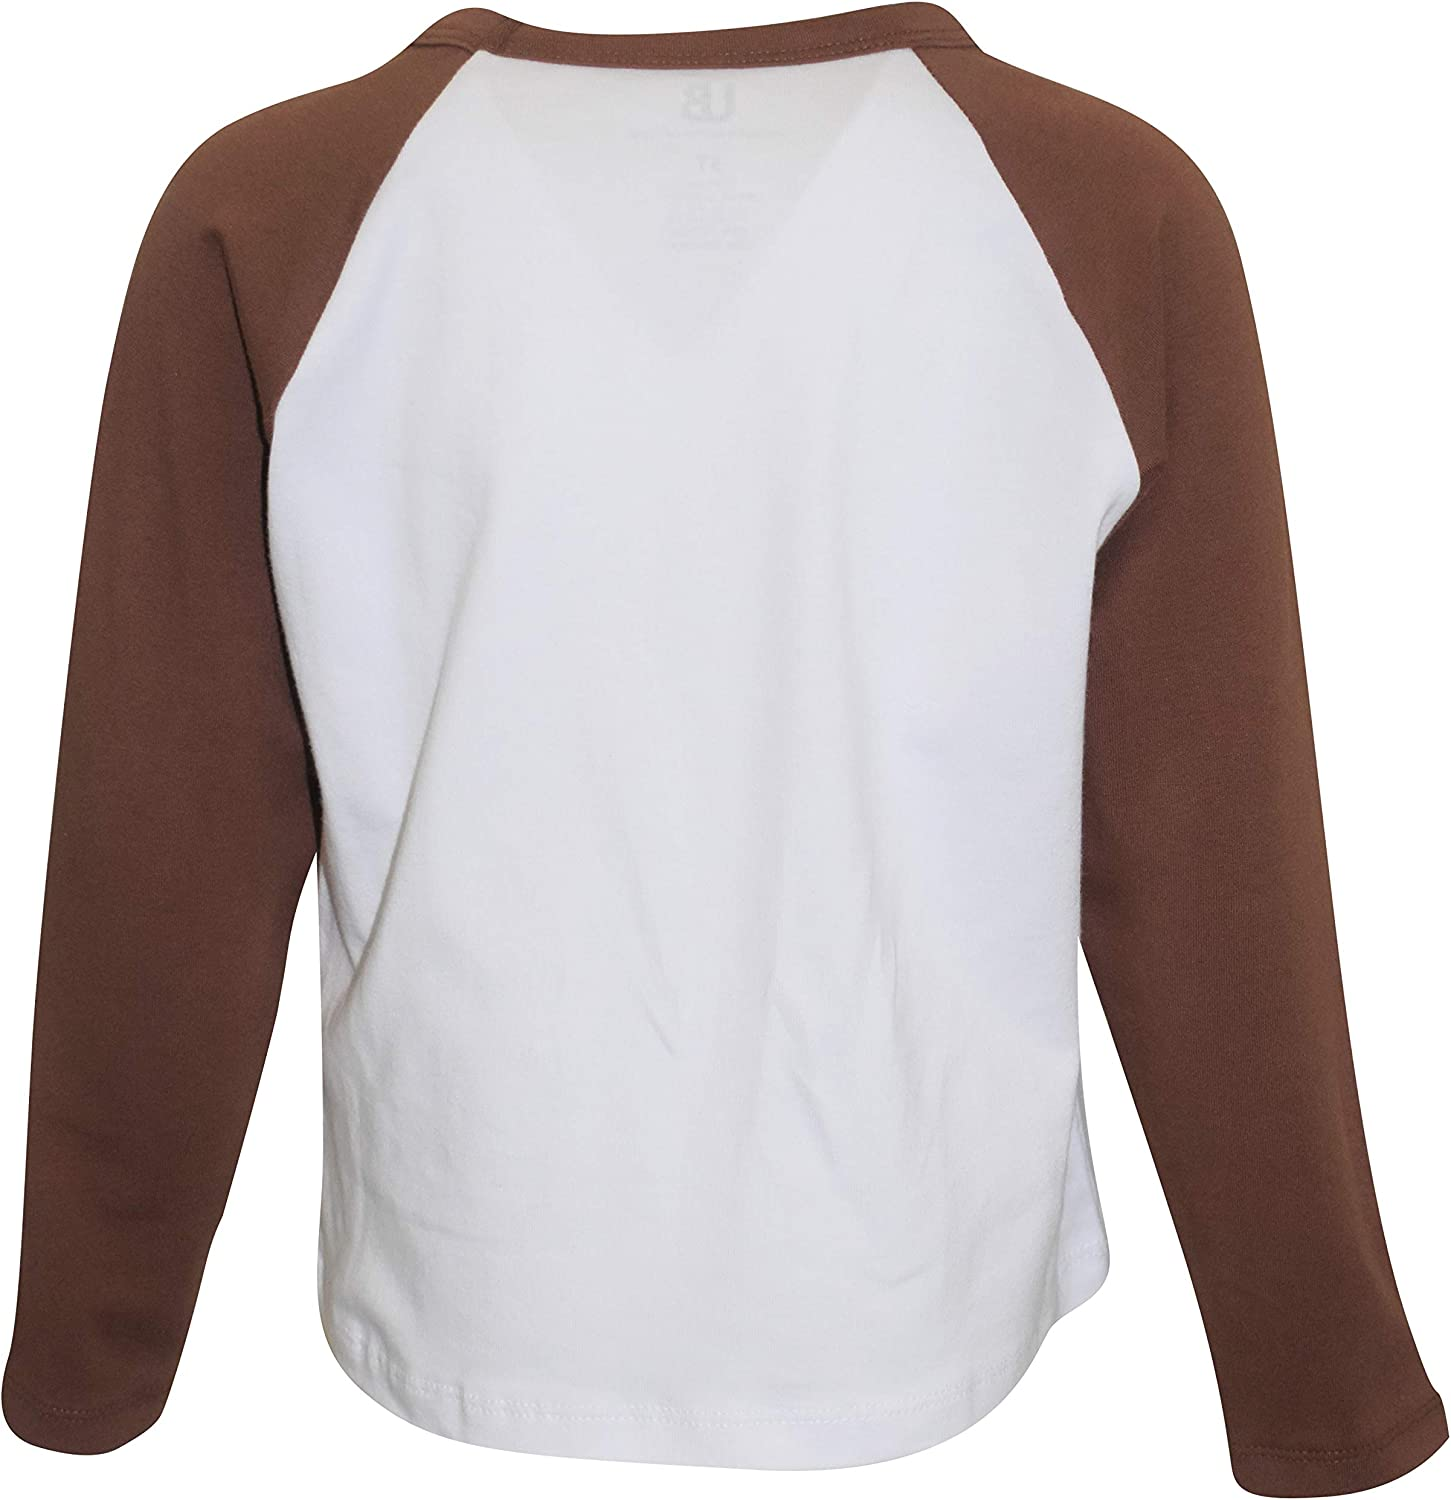 Unique Baby Boys Turkey Football and Pumpkin Pie Raglan Shirt